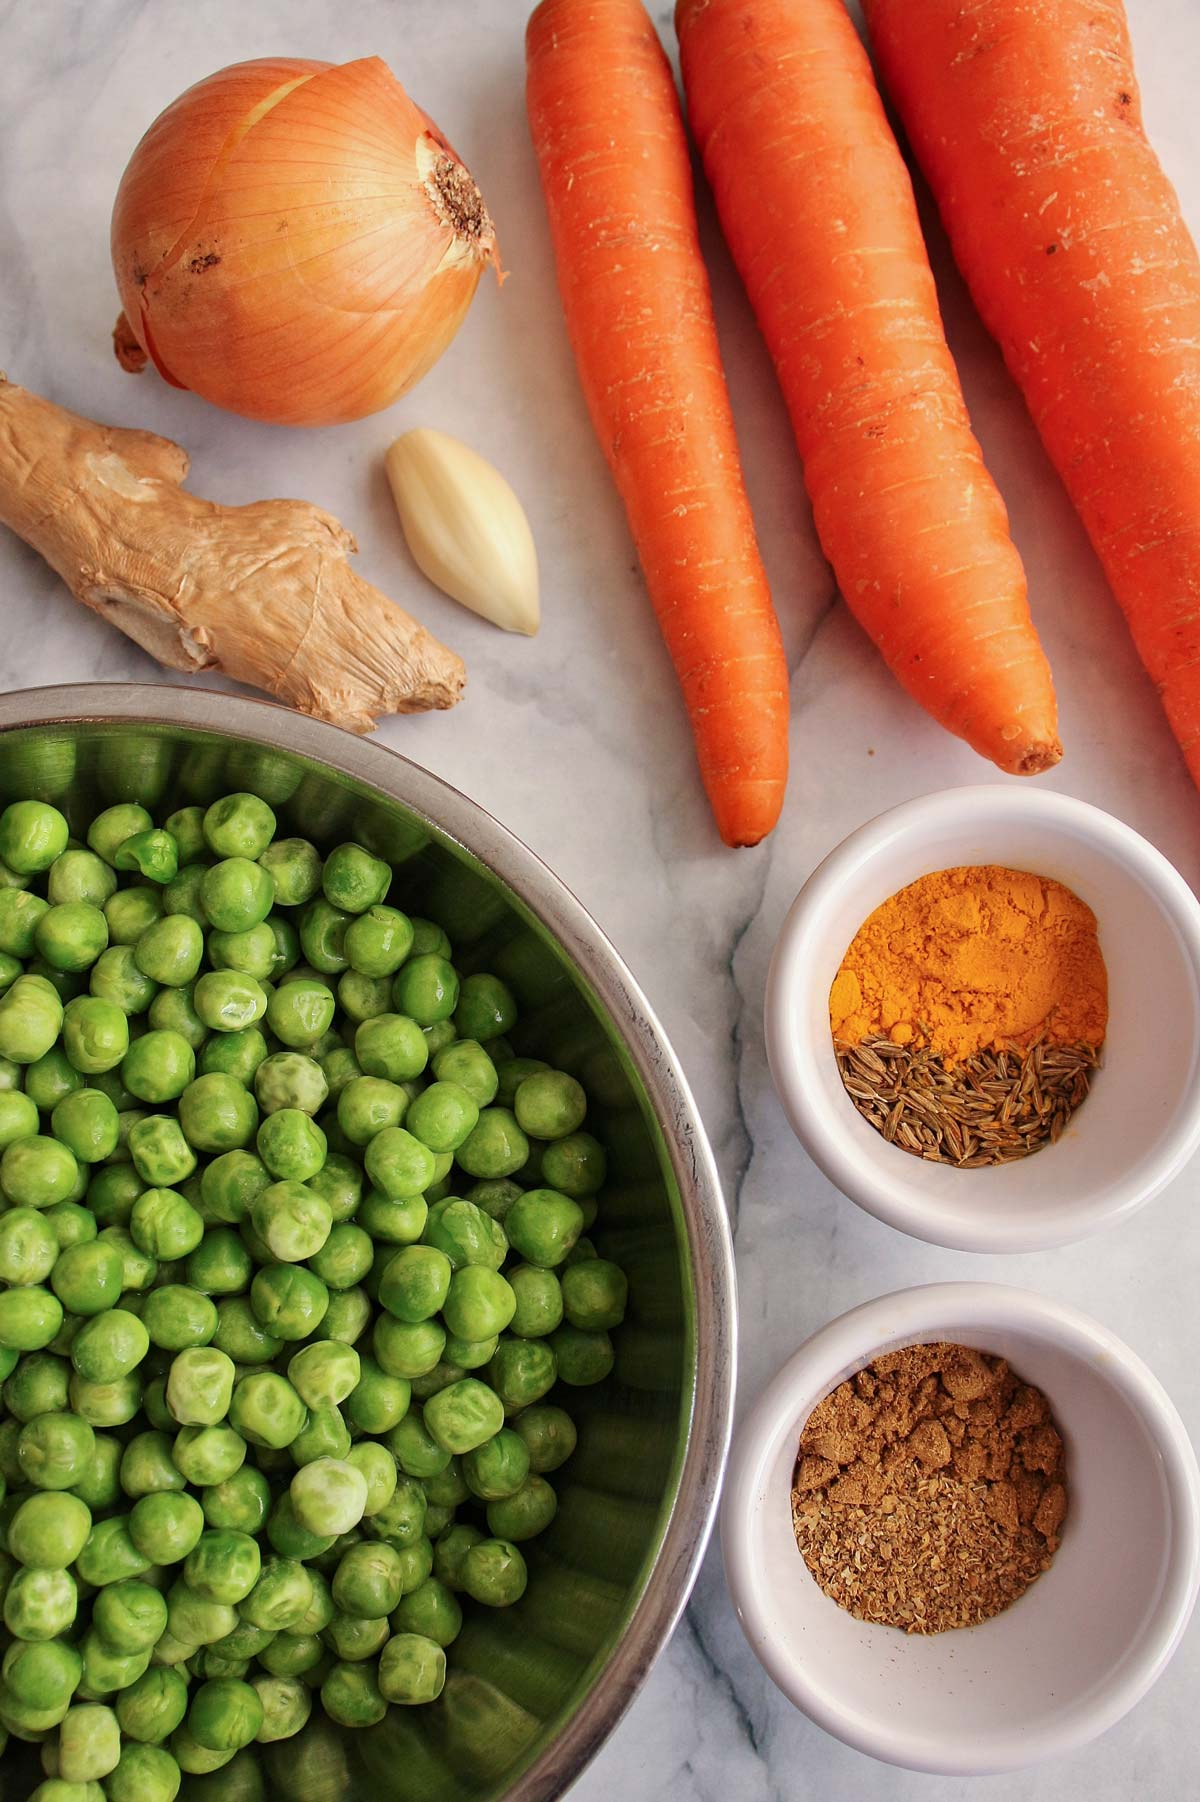 Onion, ginger, garlic, carrots, peas, and spices on a white marble surface.